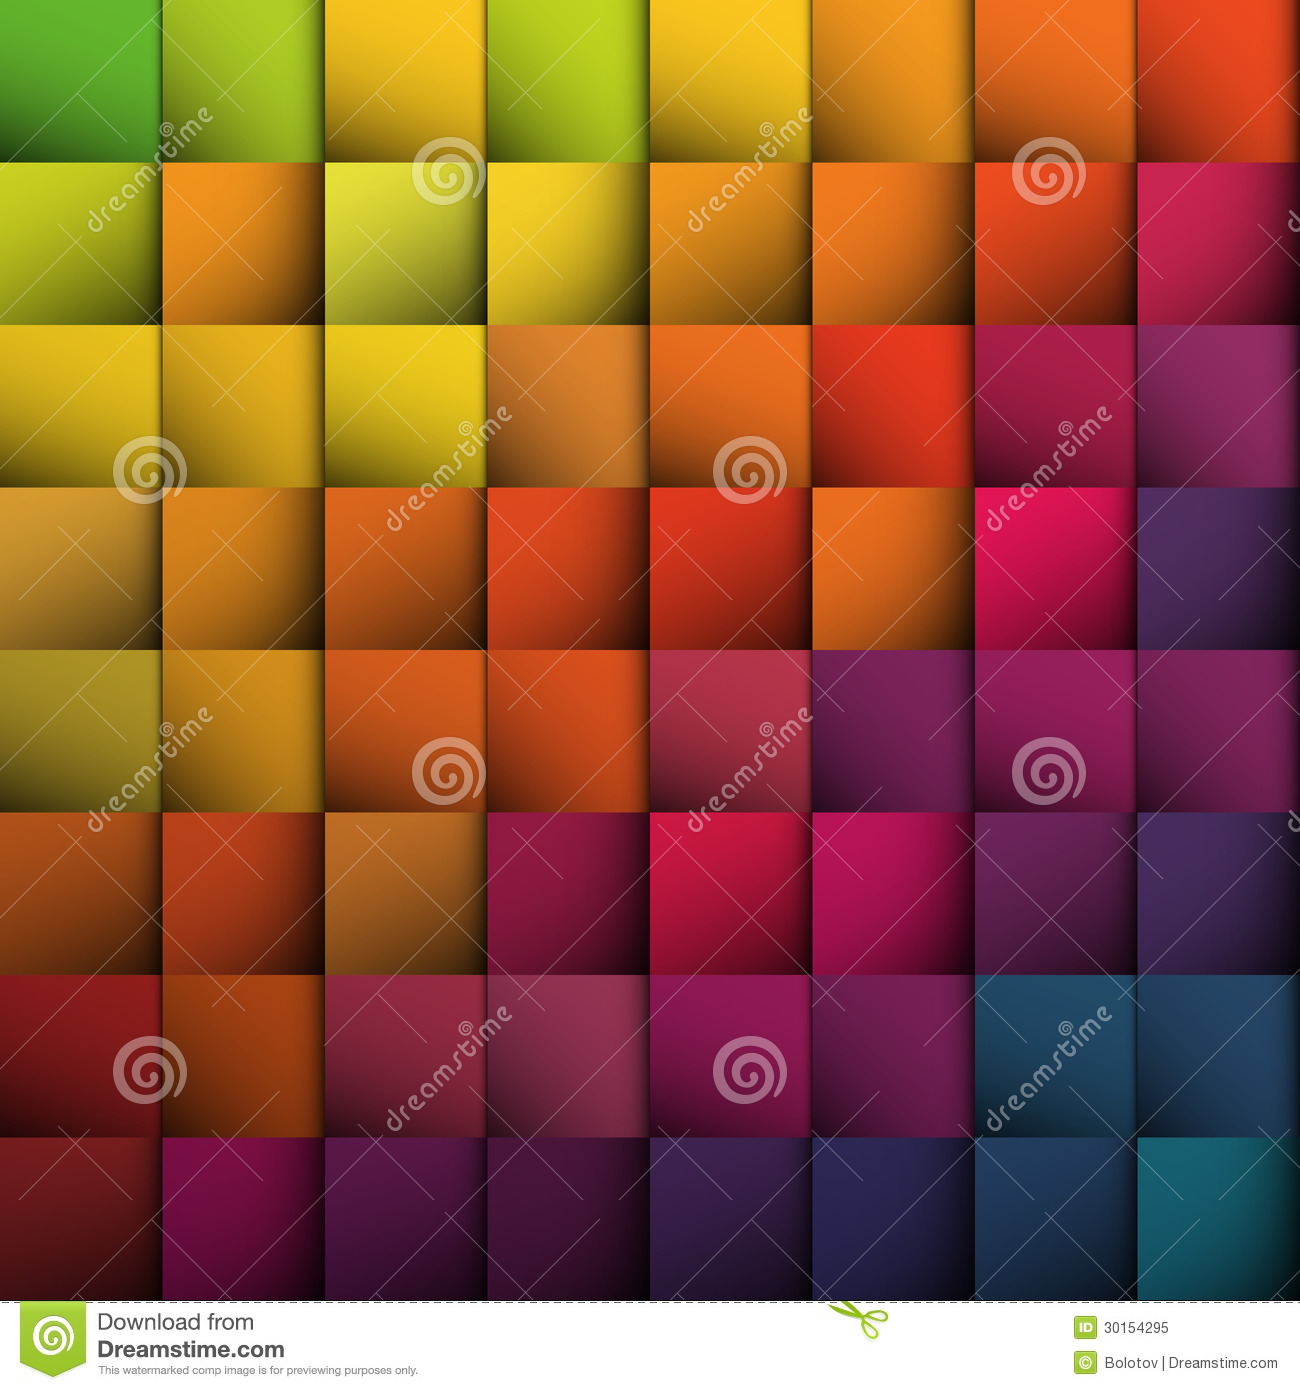 Abstract squares background.